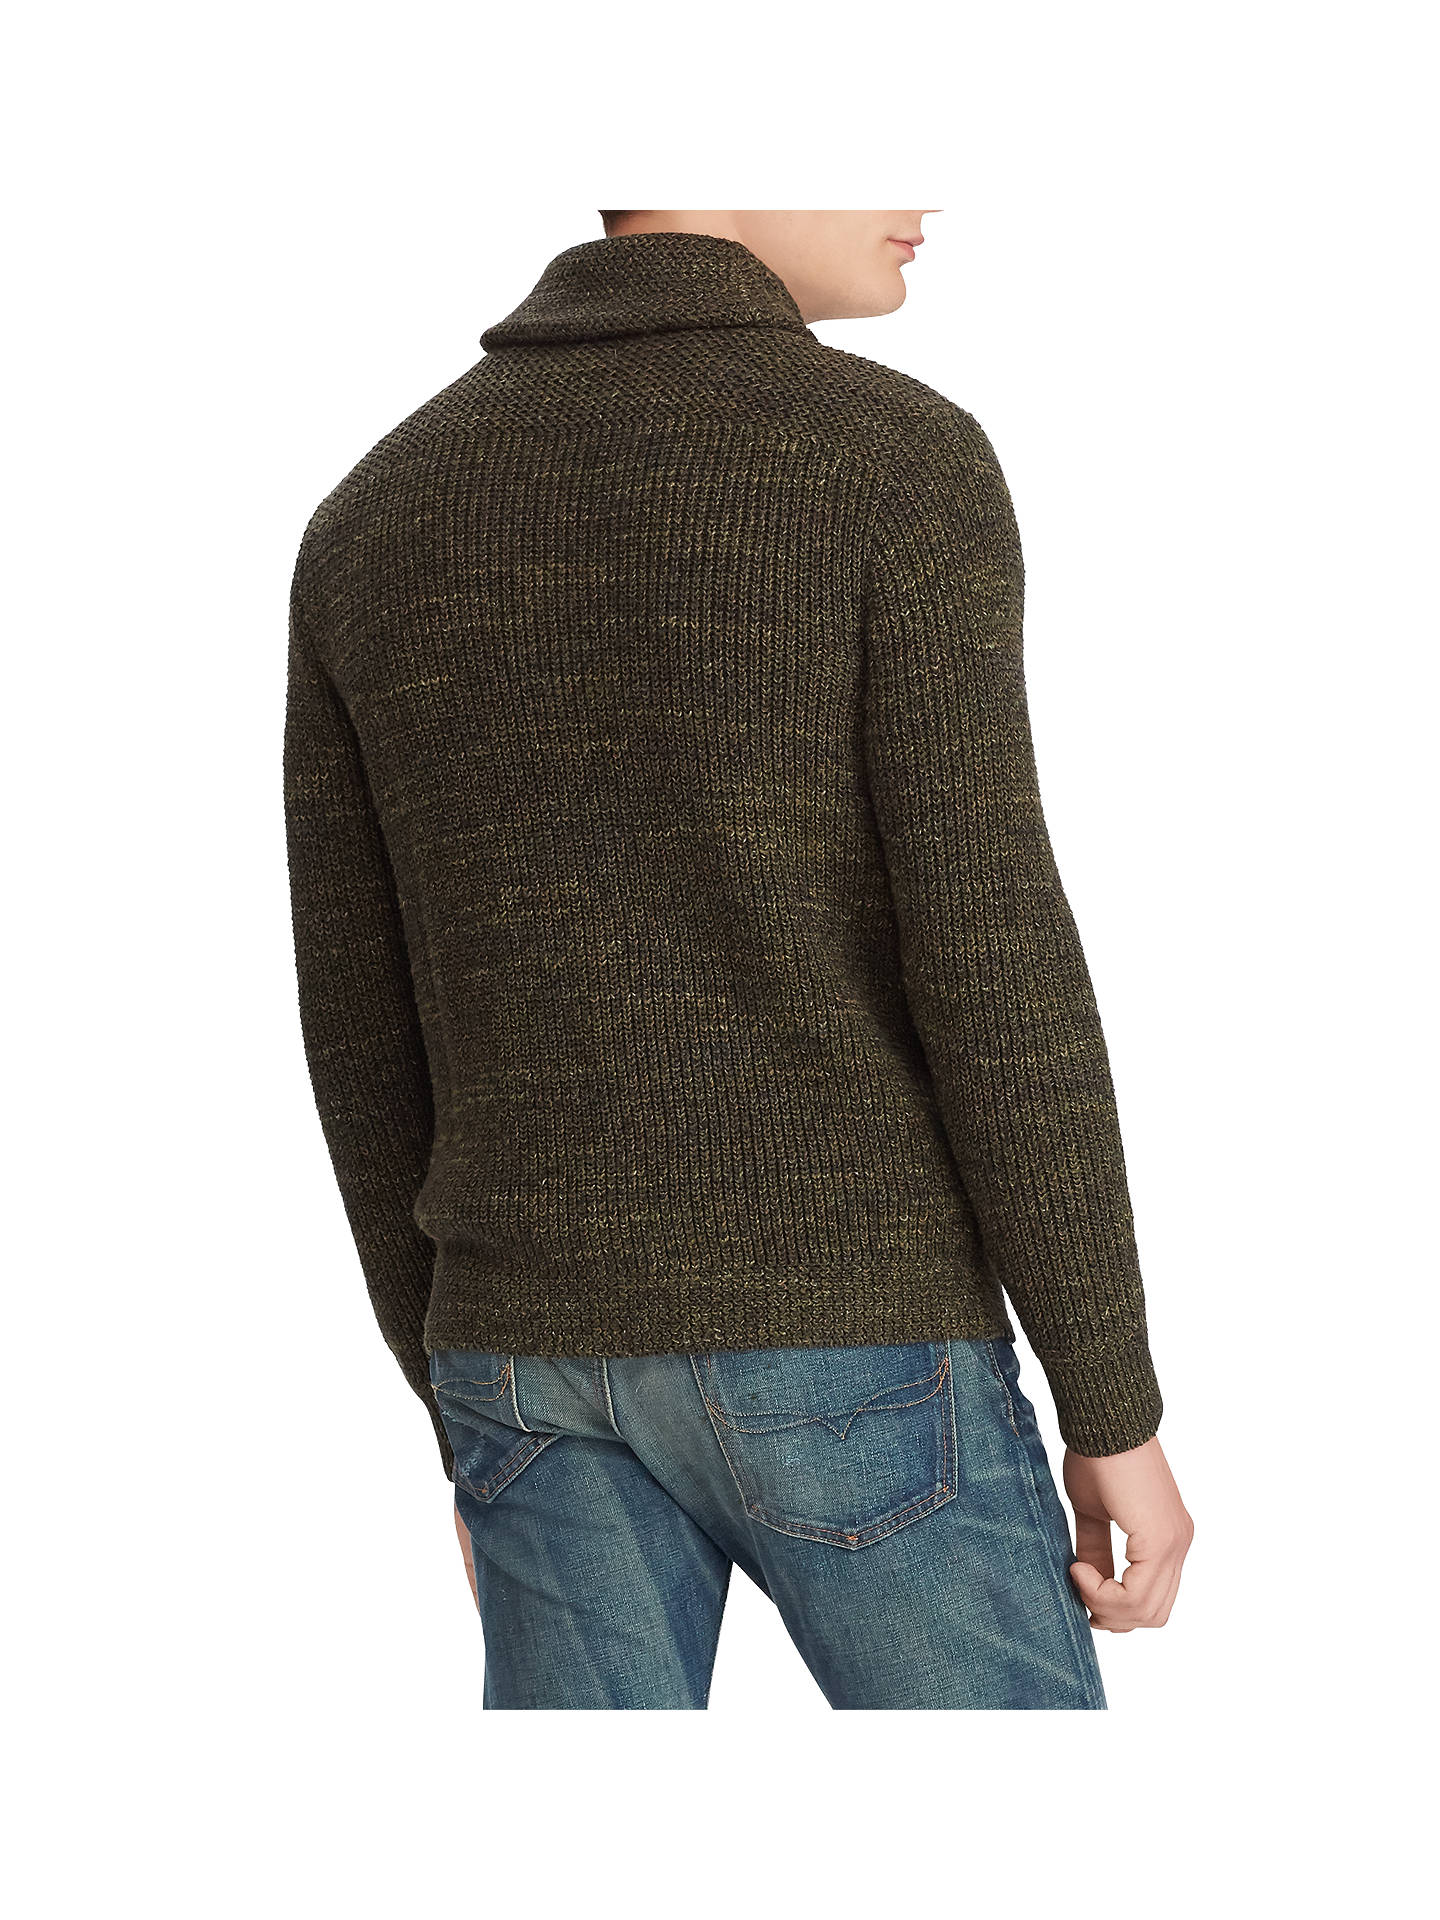 BuyPolo Ralph Lauren Shawl-Collar Cardigan, Olive Marl, L Online at johnlewis.com